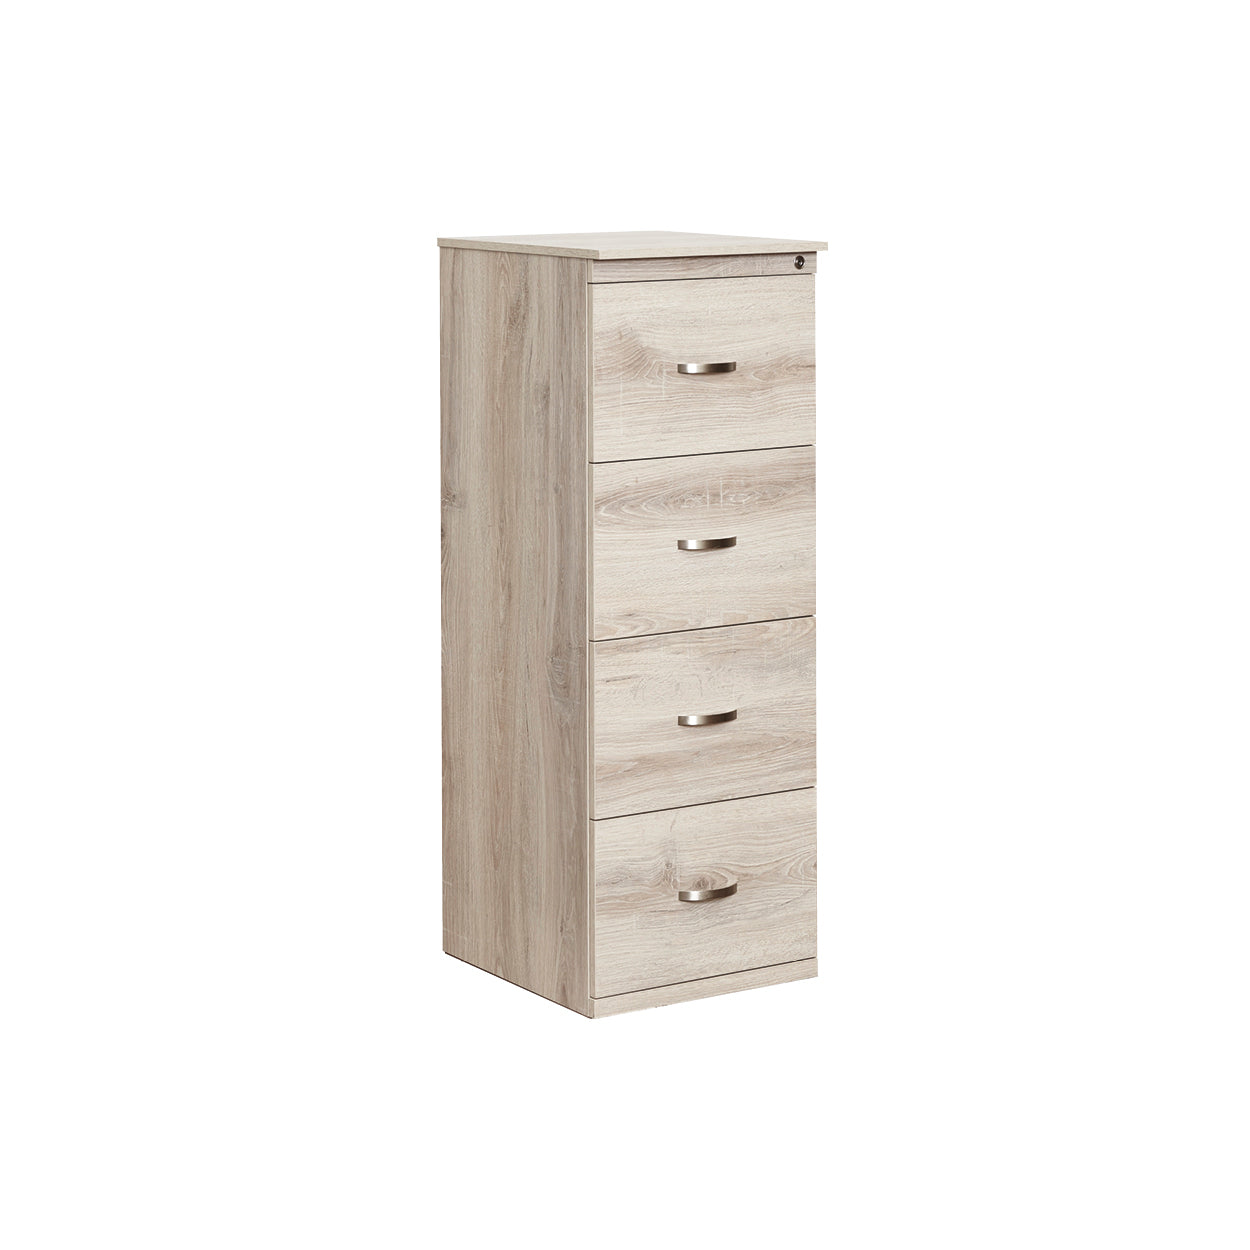 Hedcor Cobalt 16 filing drawers